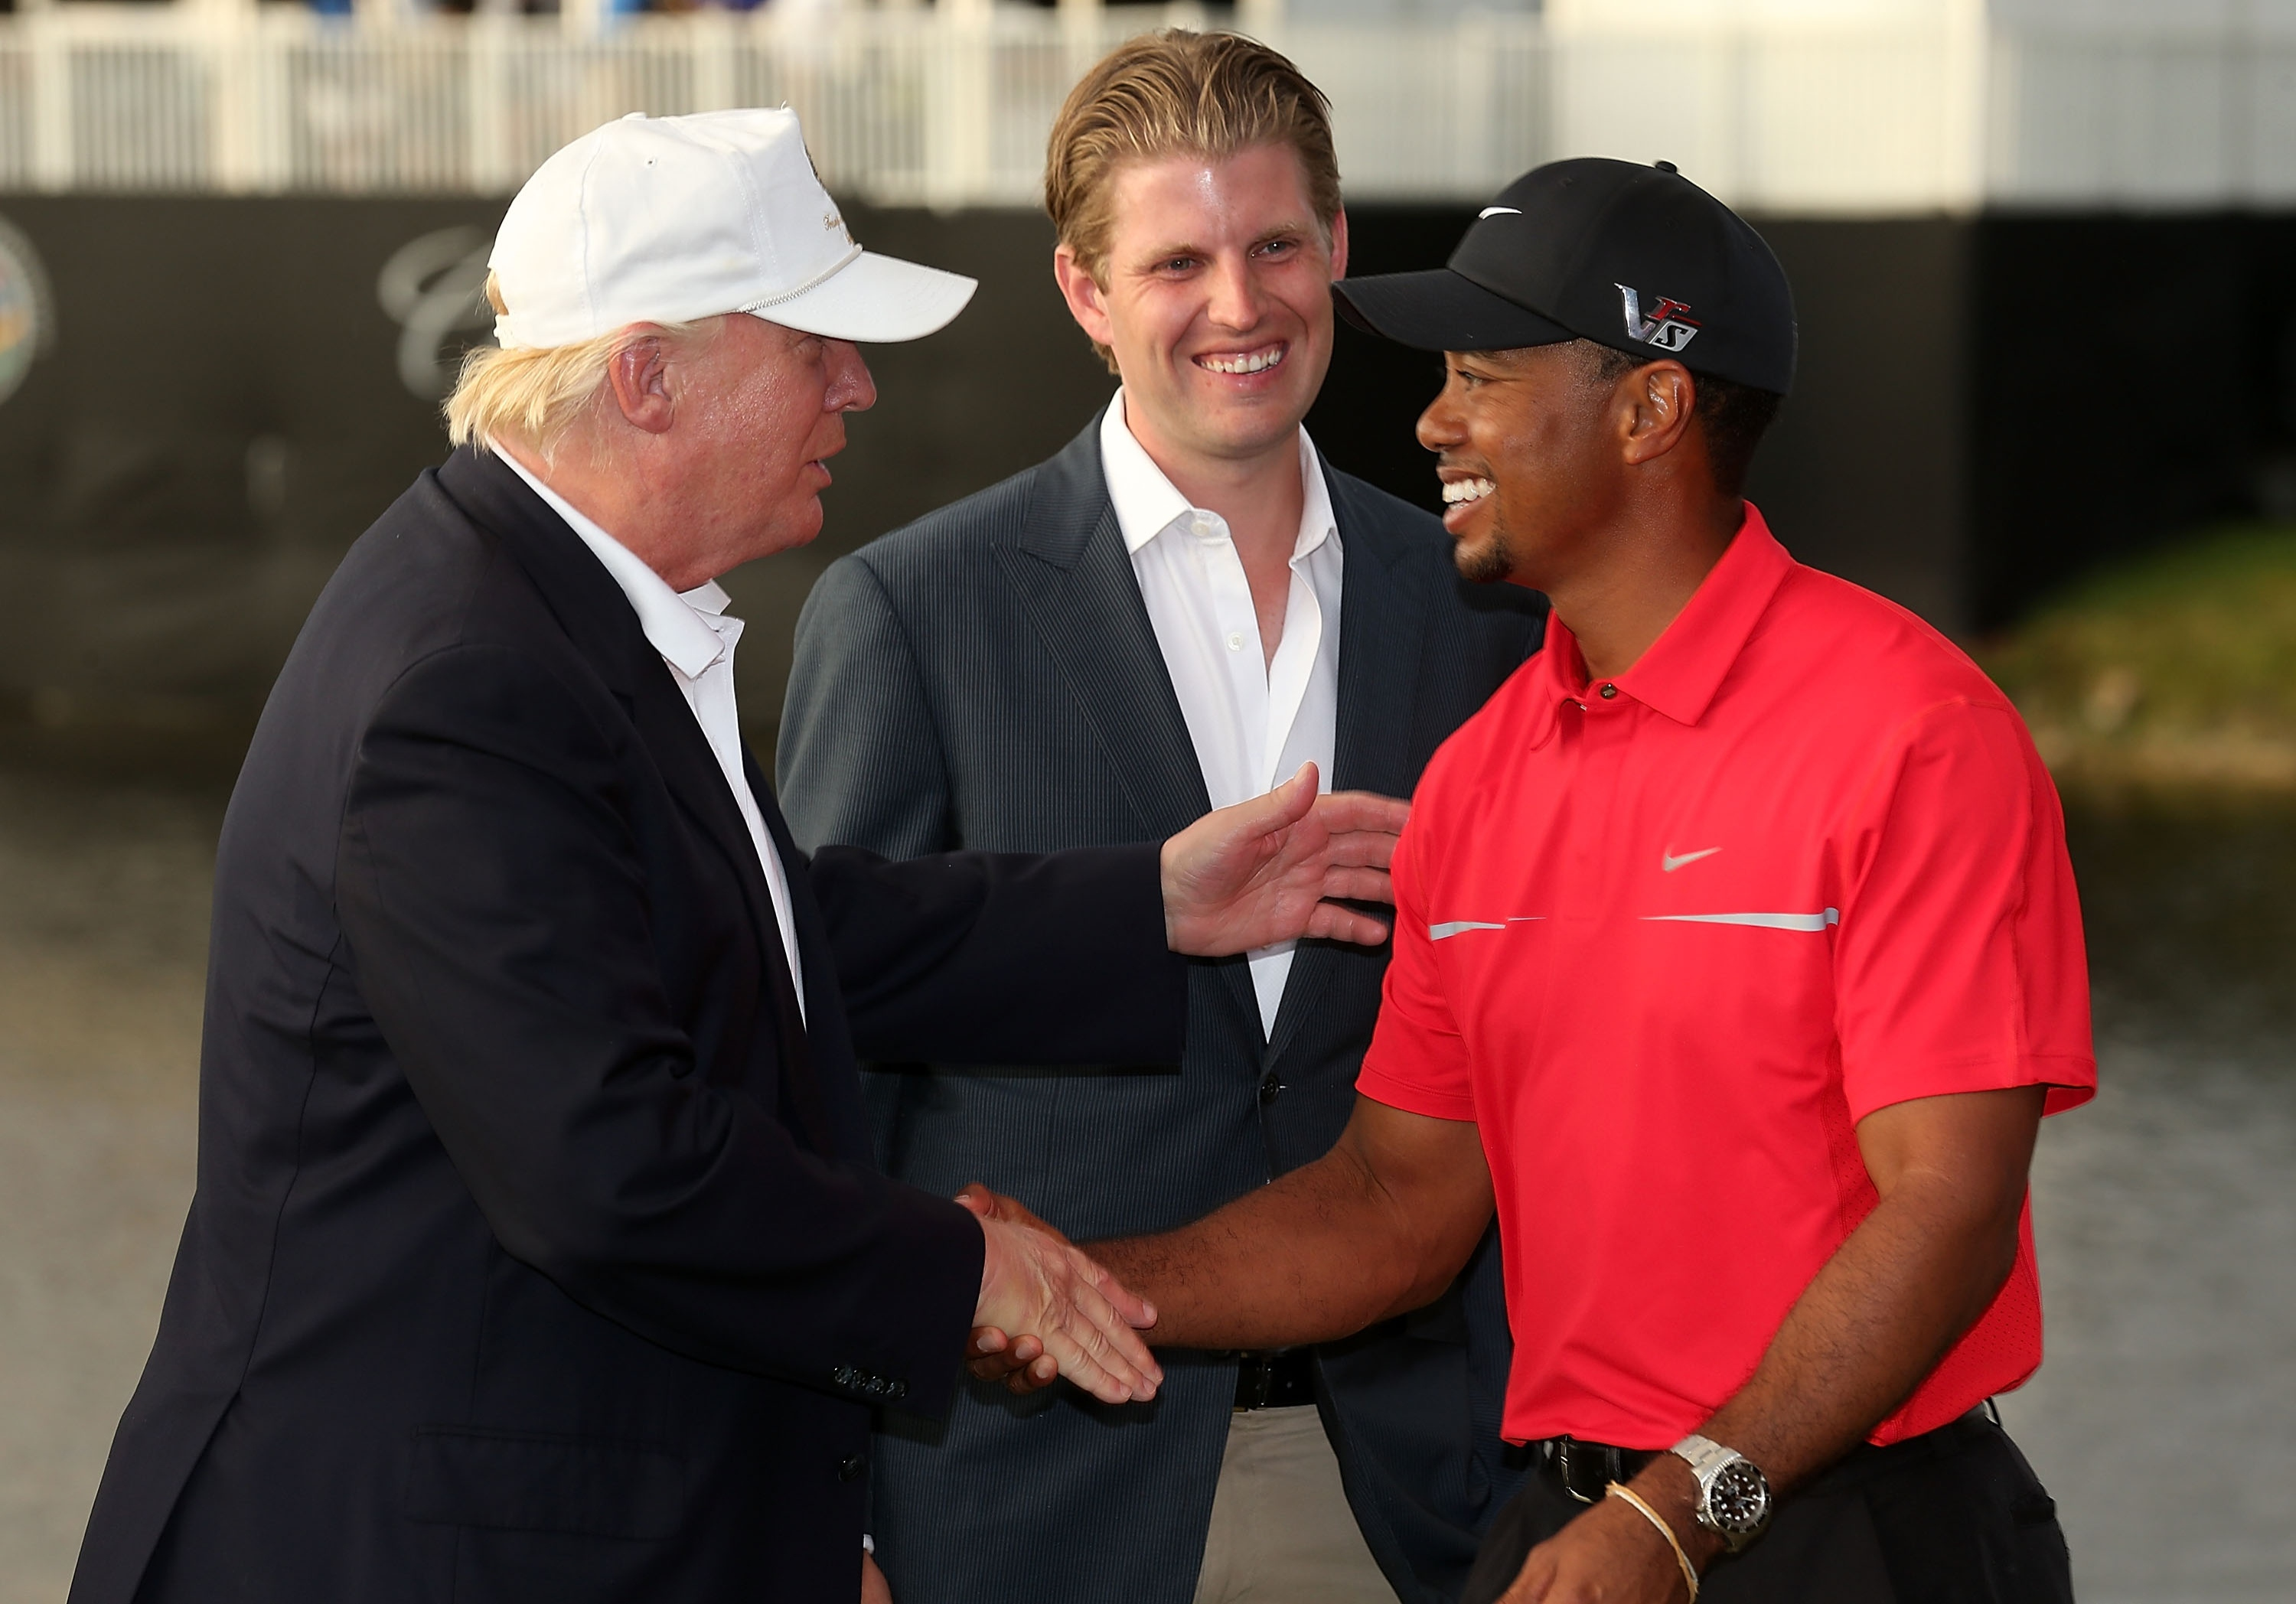 Donald Trump greets Tiger Woods in 2013 at what turned out to be one of the last PGA Tour tournaments at Trump Doral. (Getty)